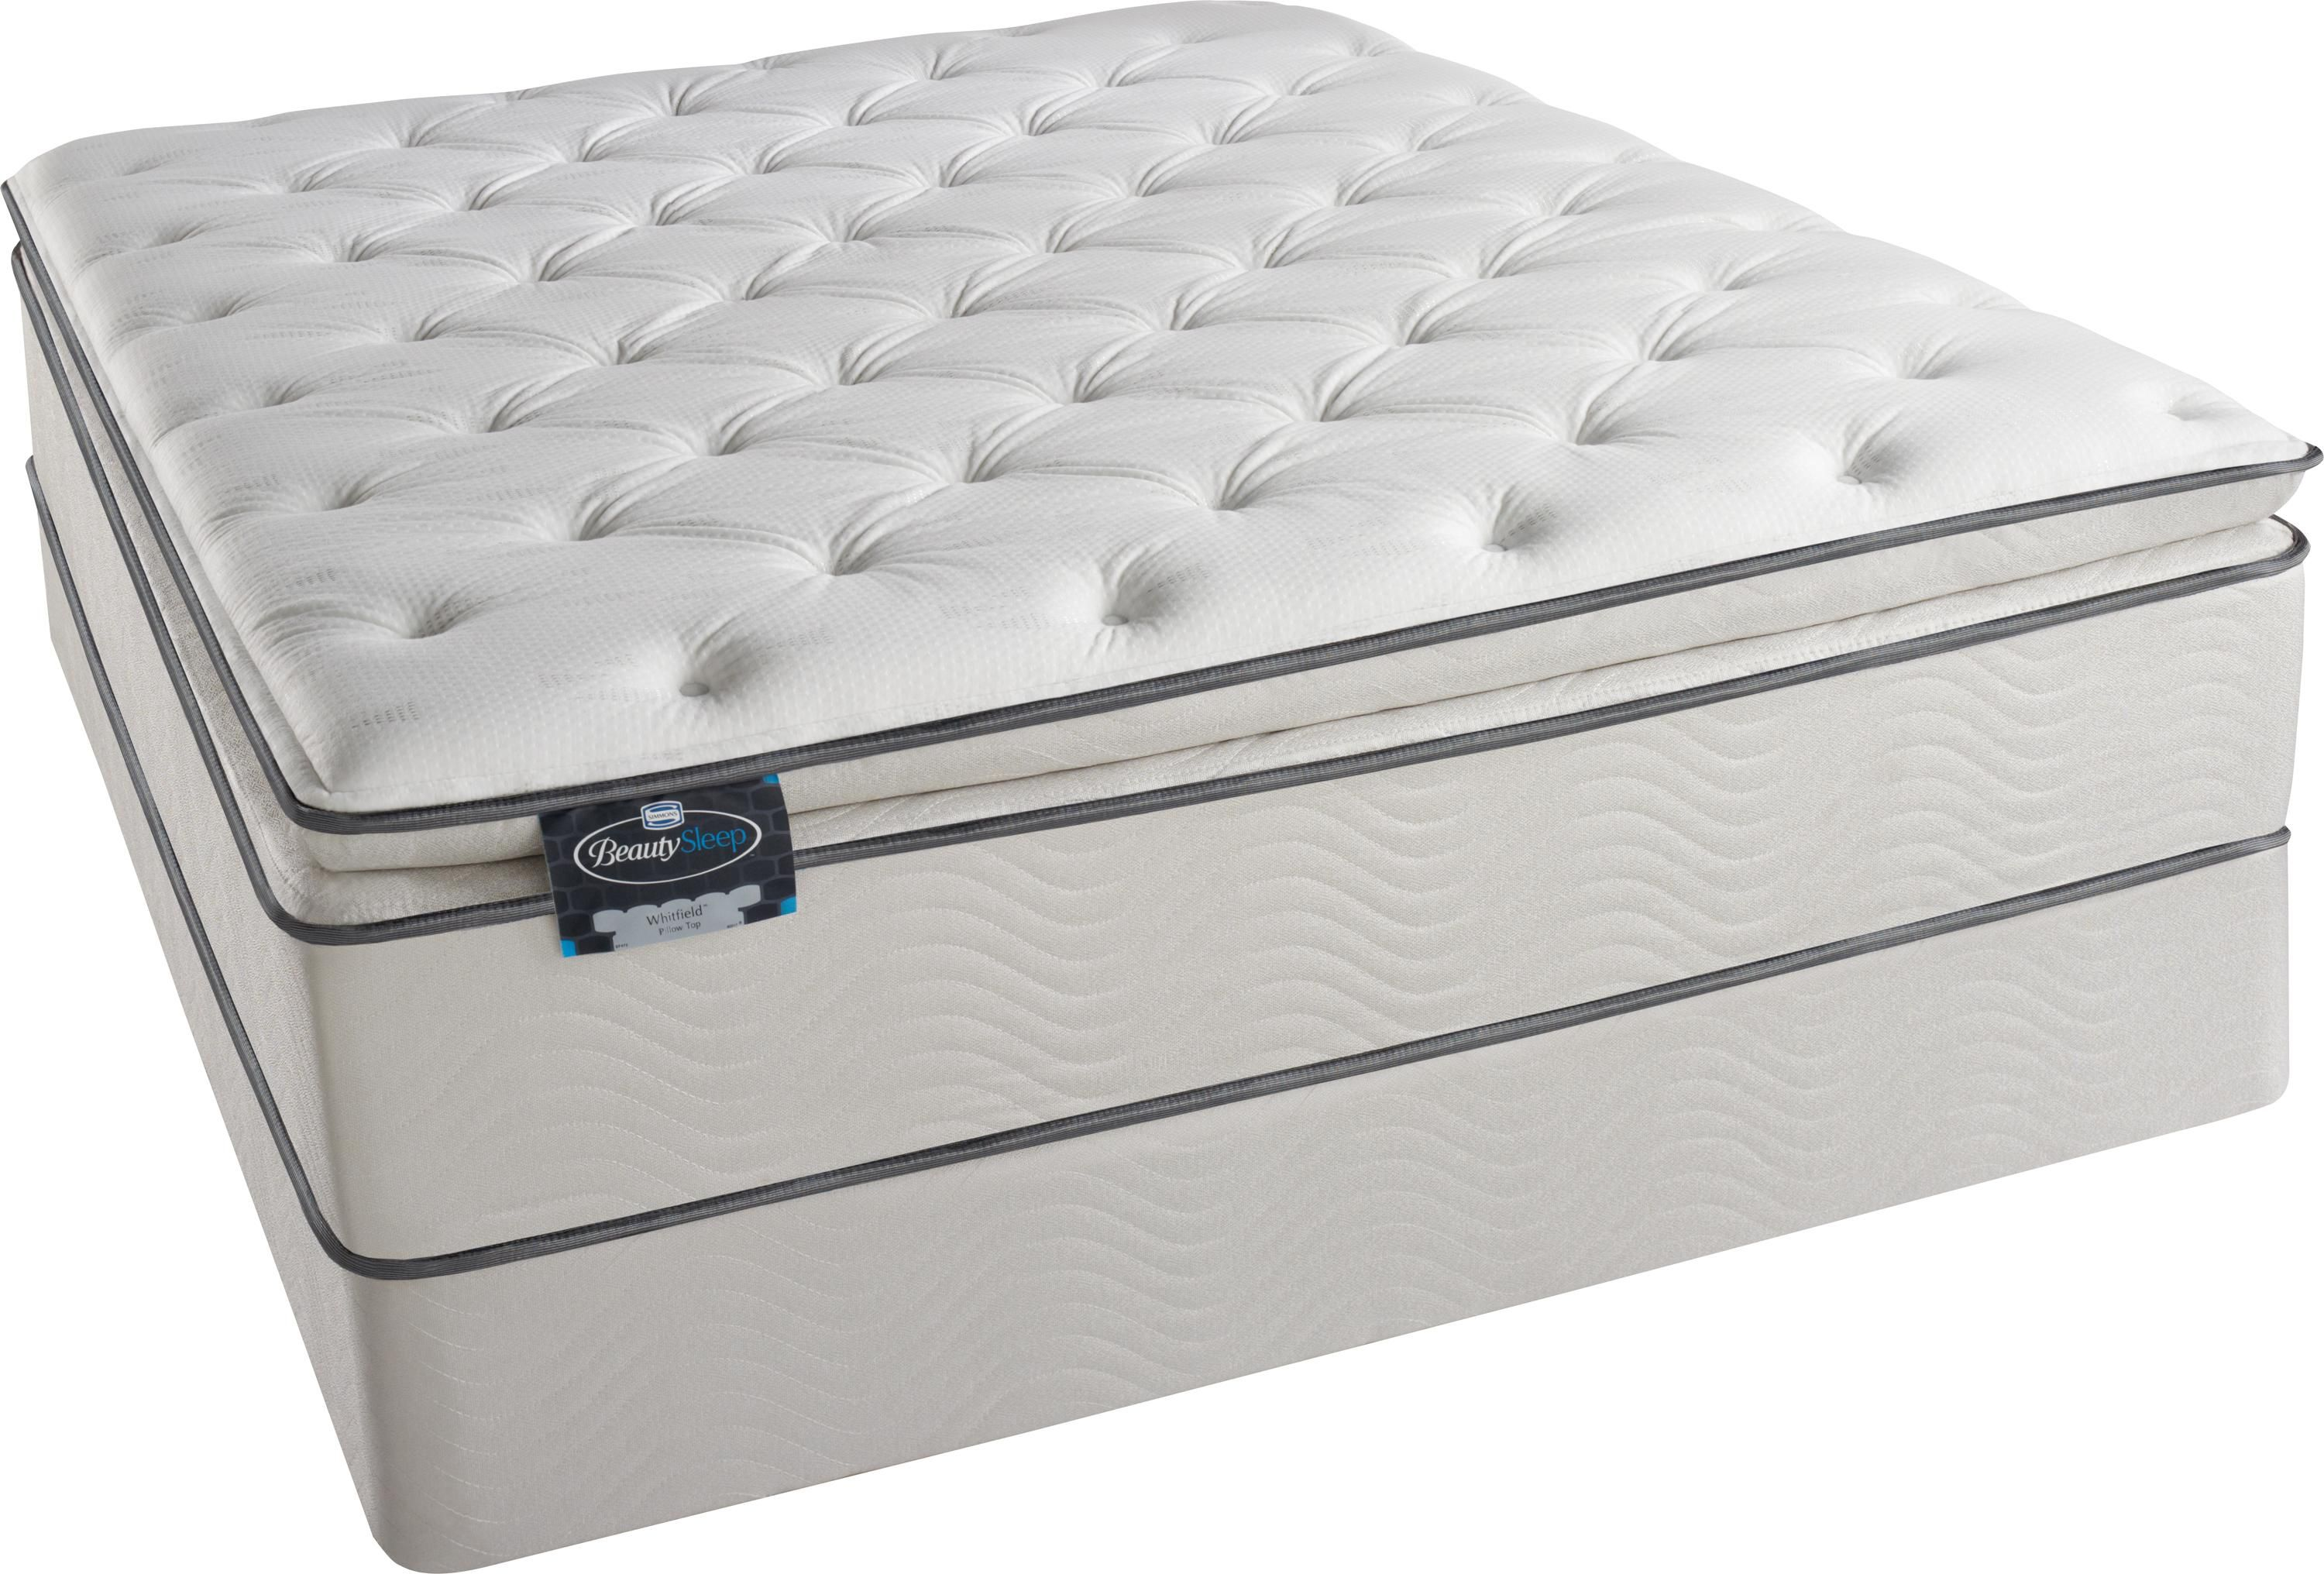 width queen pillow top mattress plush pt products trim simmons q by plushpt recharge item threshold contender height